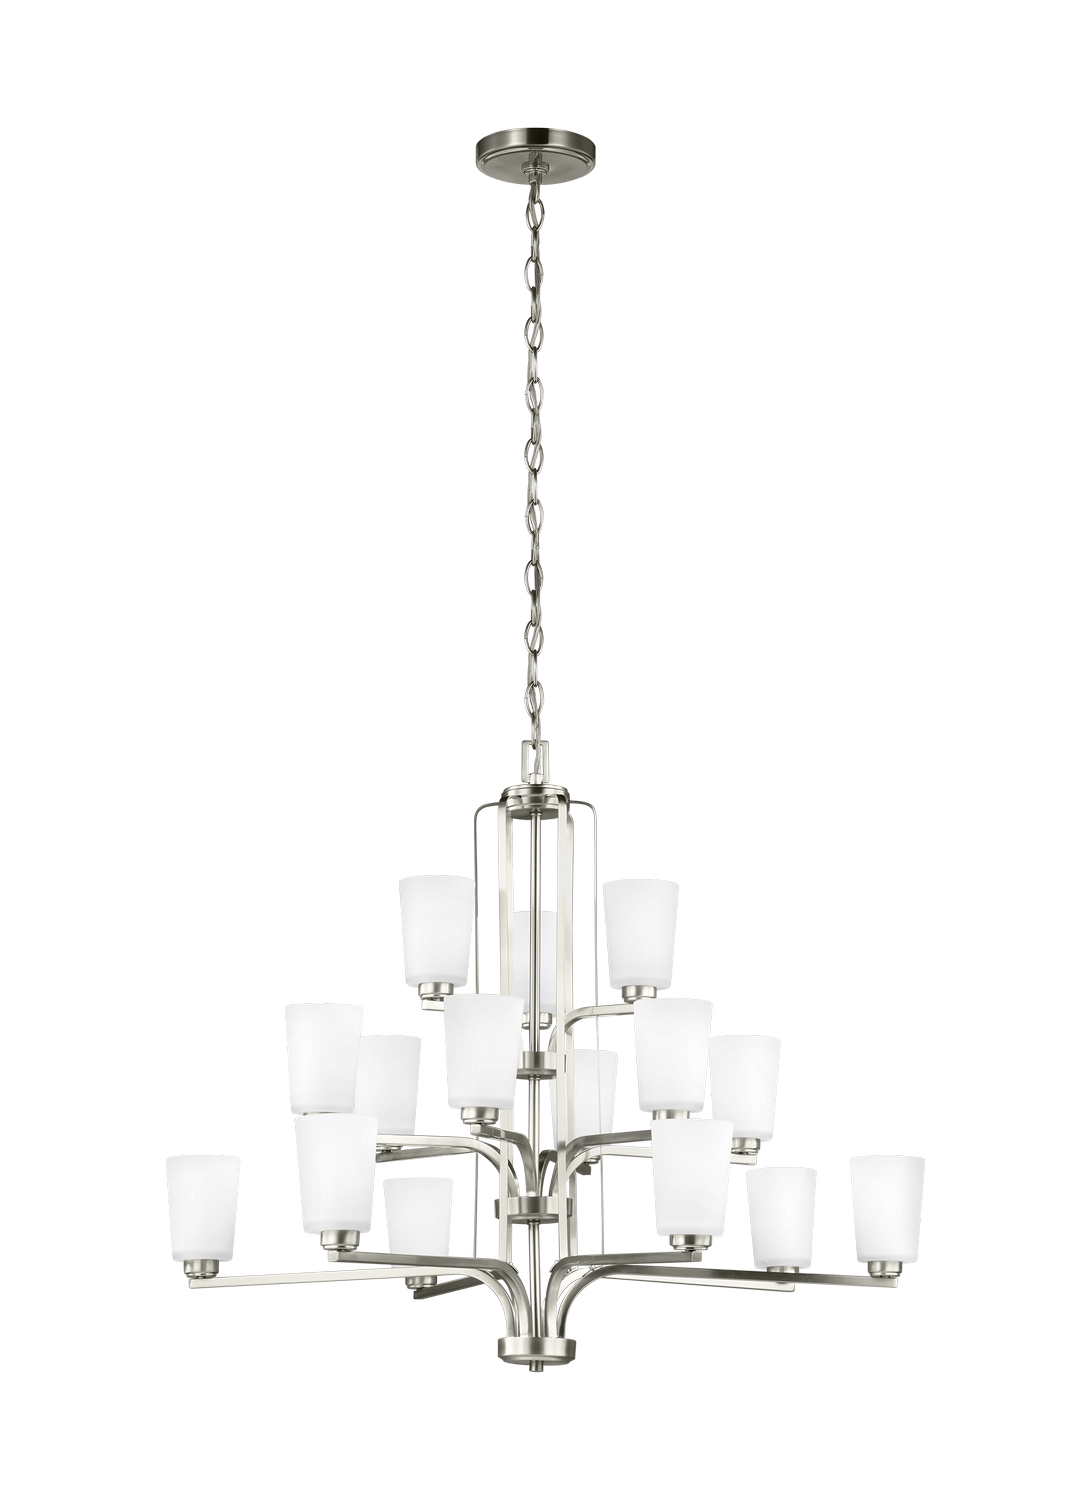 15 Light Chandelier from the Franport collection by Seagull 3128915EN3 962